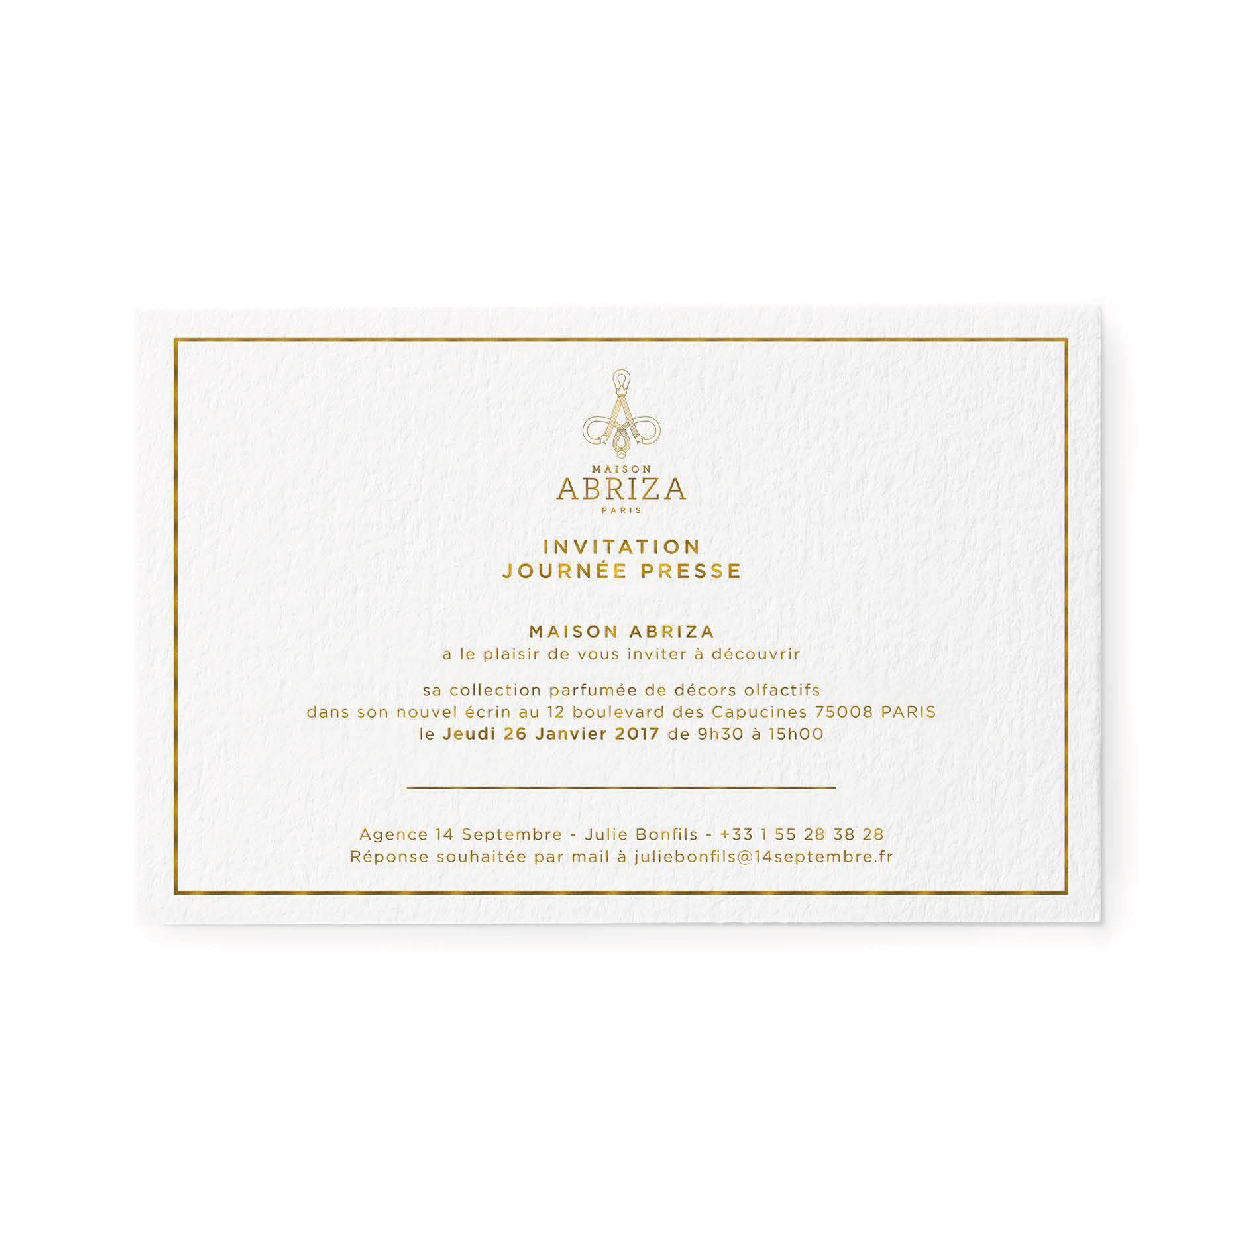 1703 FACTORY- ABRIZA invitation presse